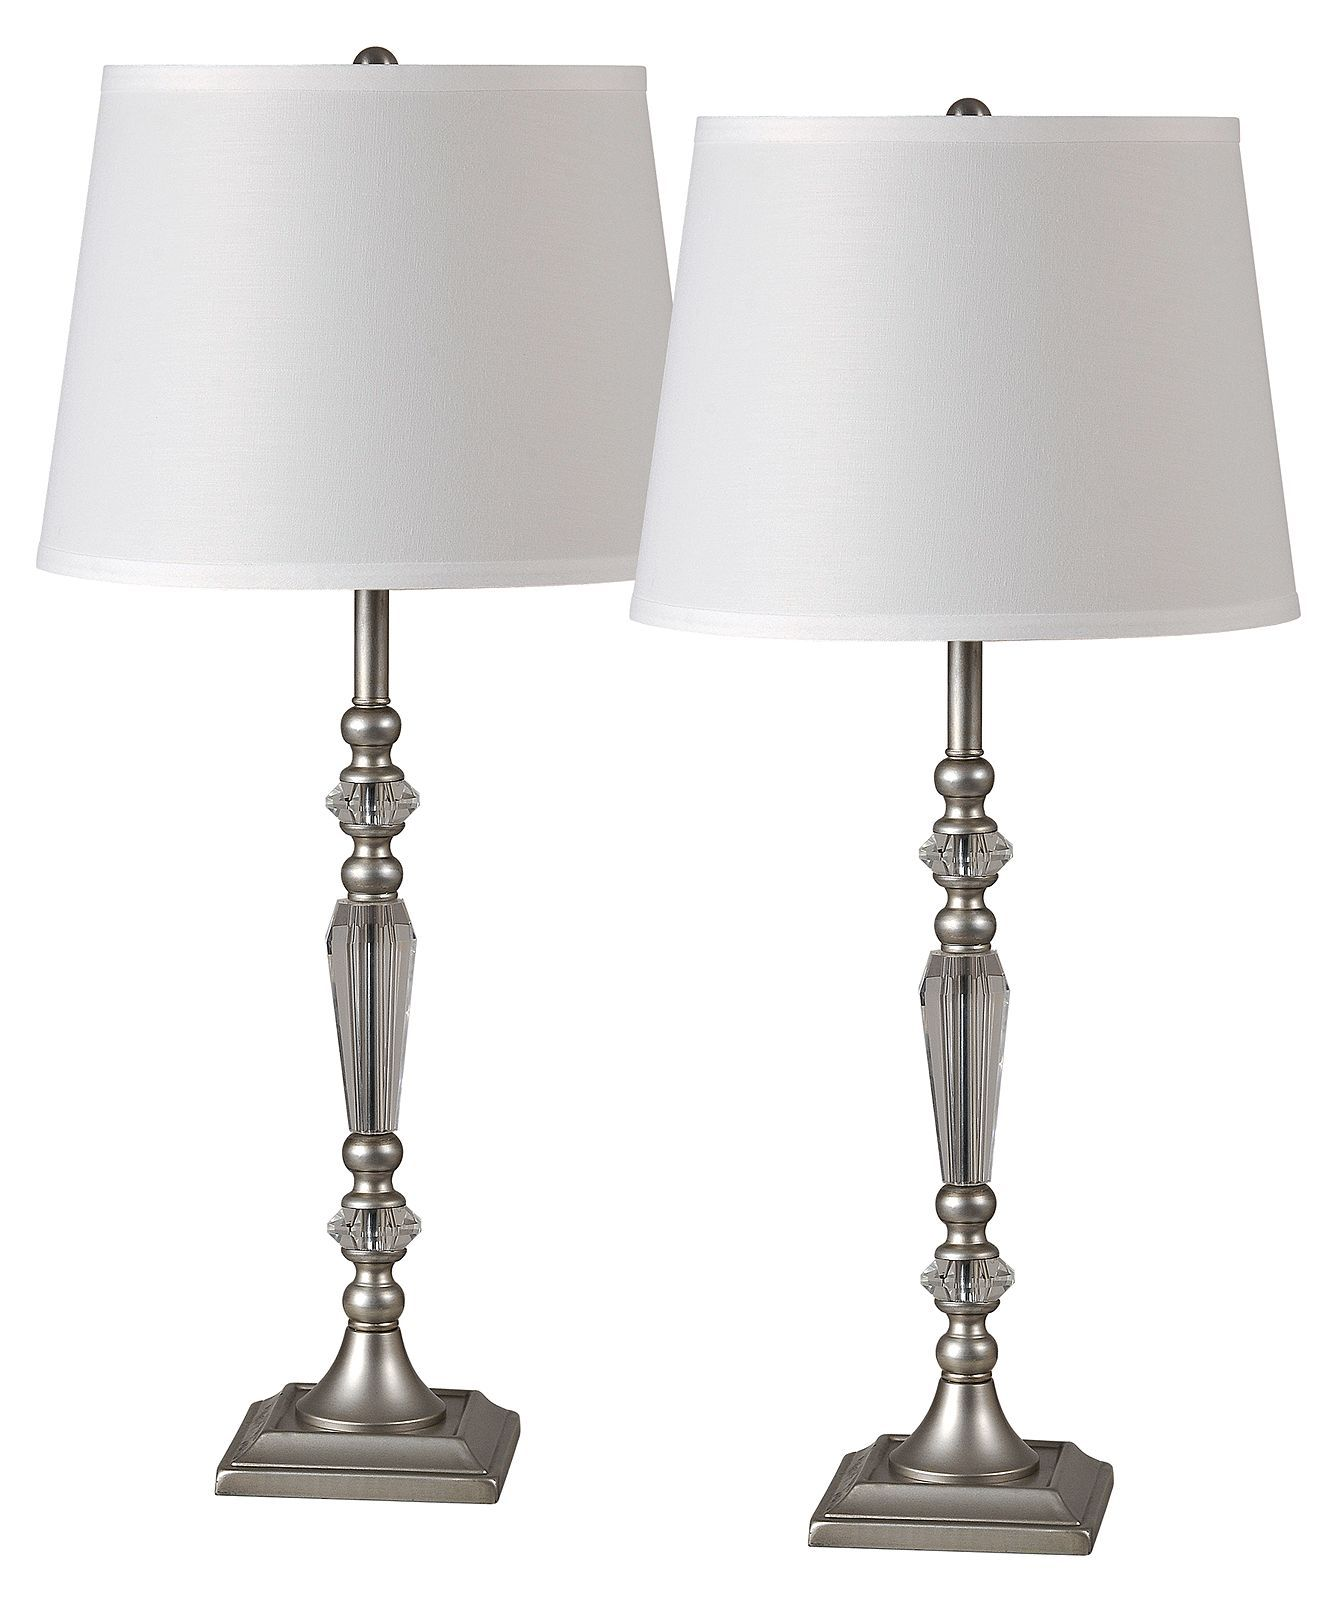 Macys Table Lamps Endearing Renwil Table Lamp Set Edna  Shop All Lighting  For The Home Inspiration